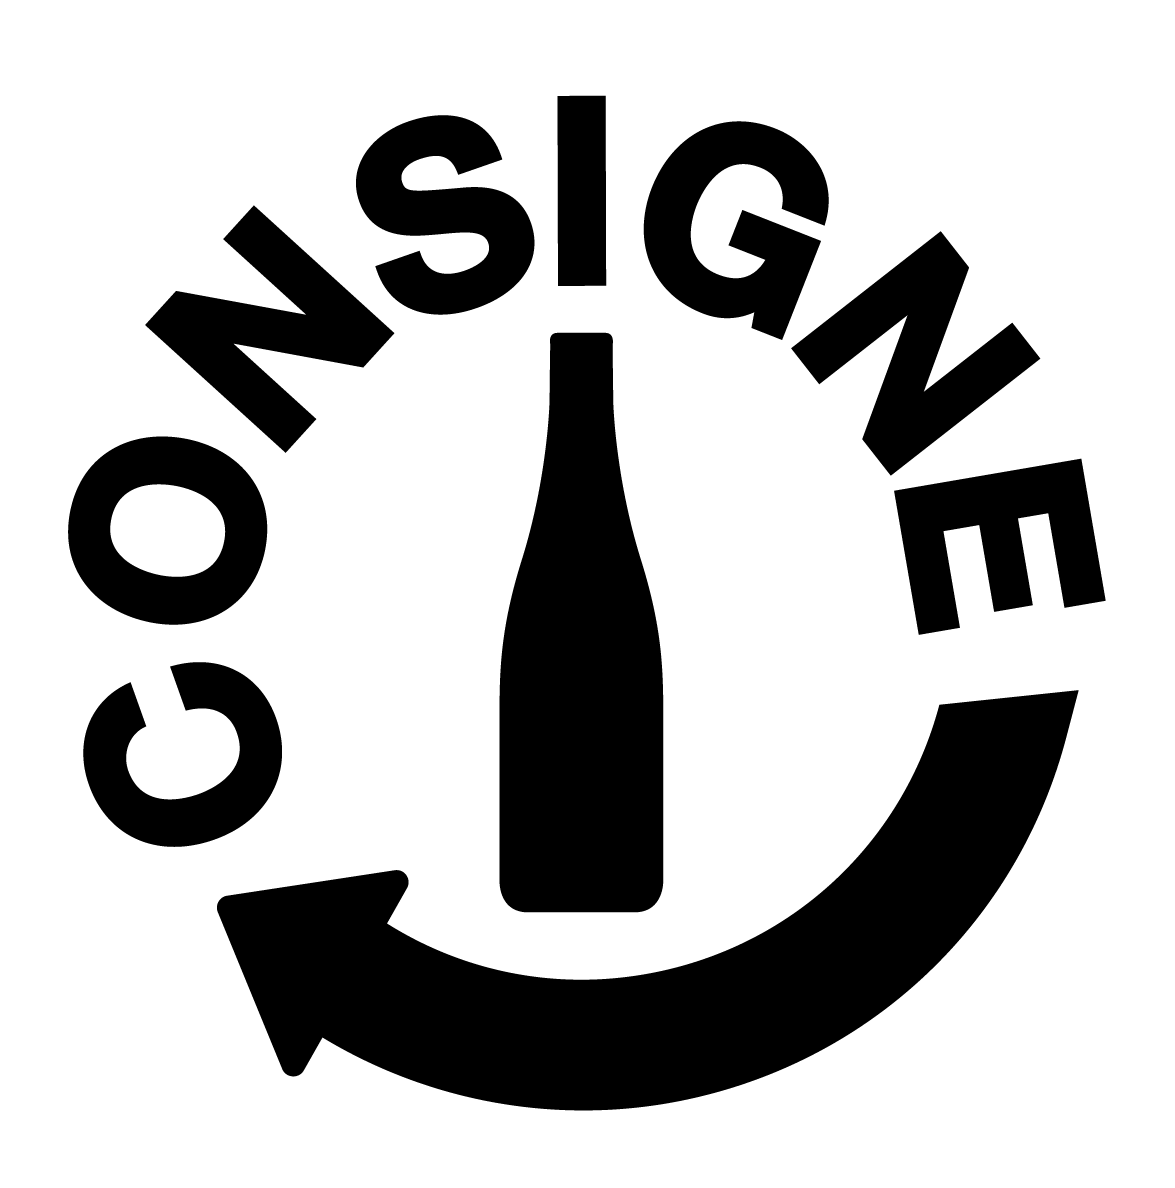 LOGO_LABEL_CONSIGNE_Black_HD (1)